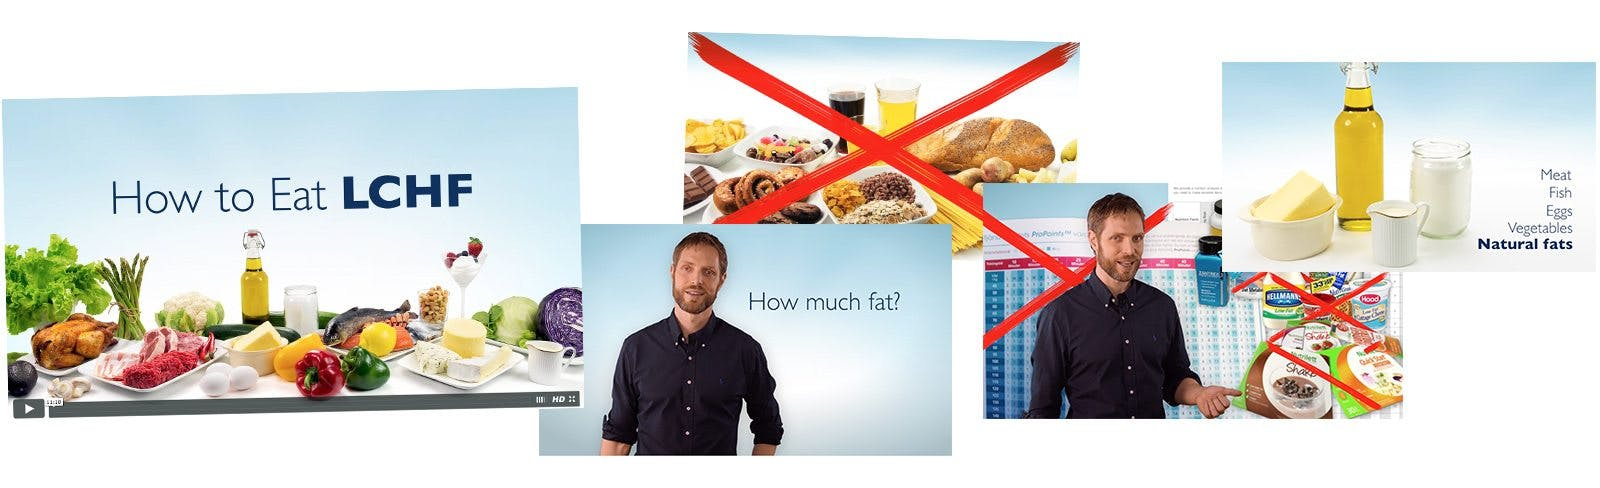 How to Eat LCHF Video Course